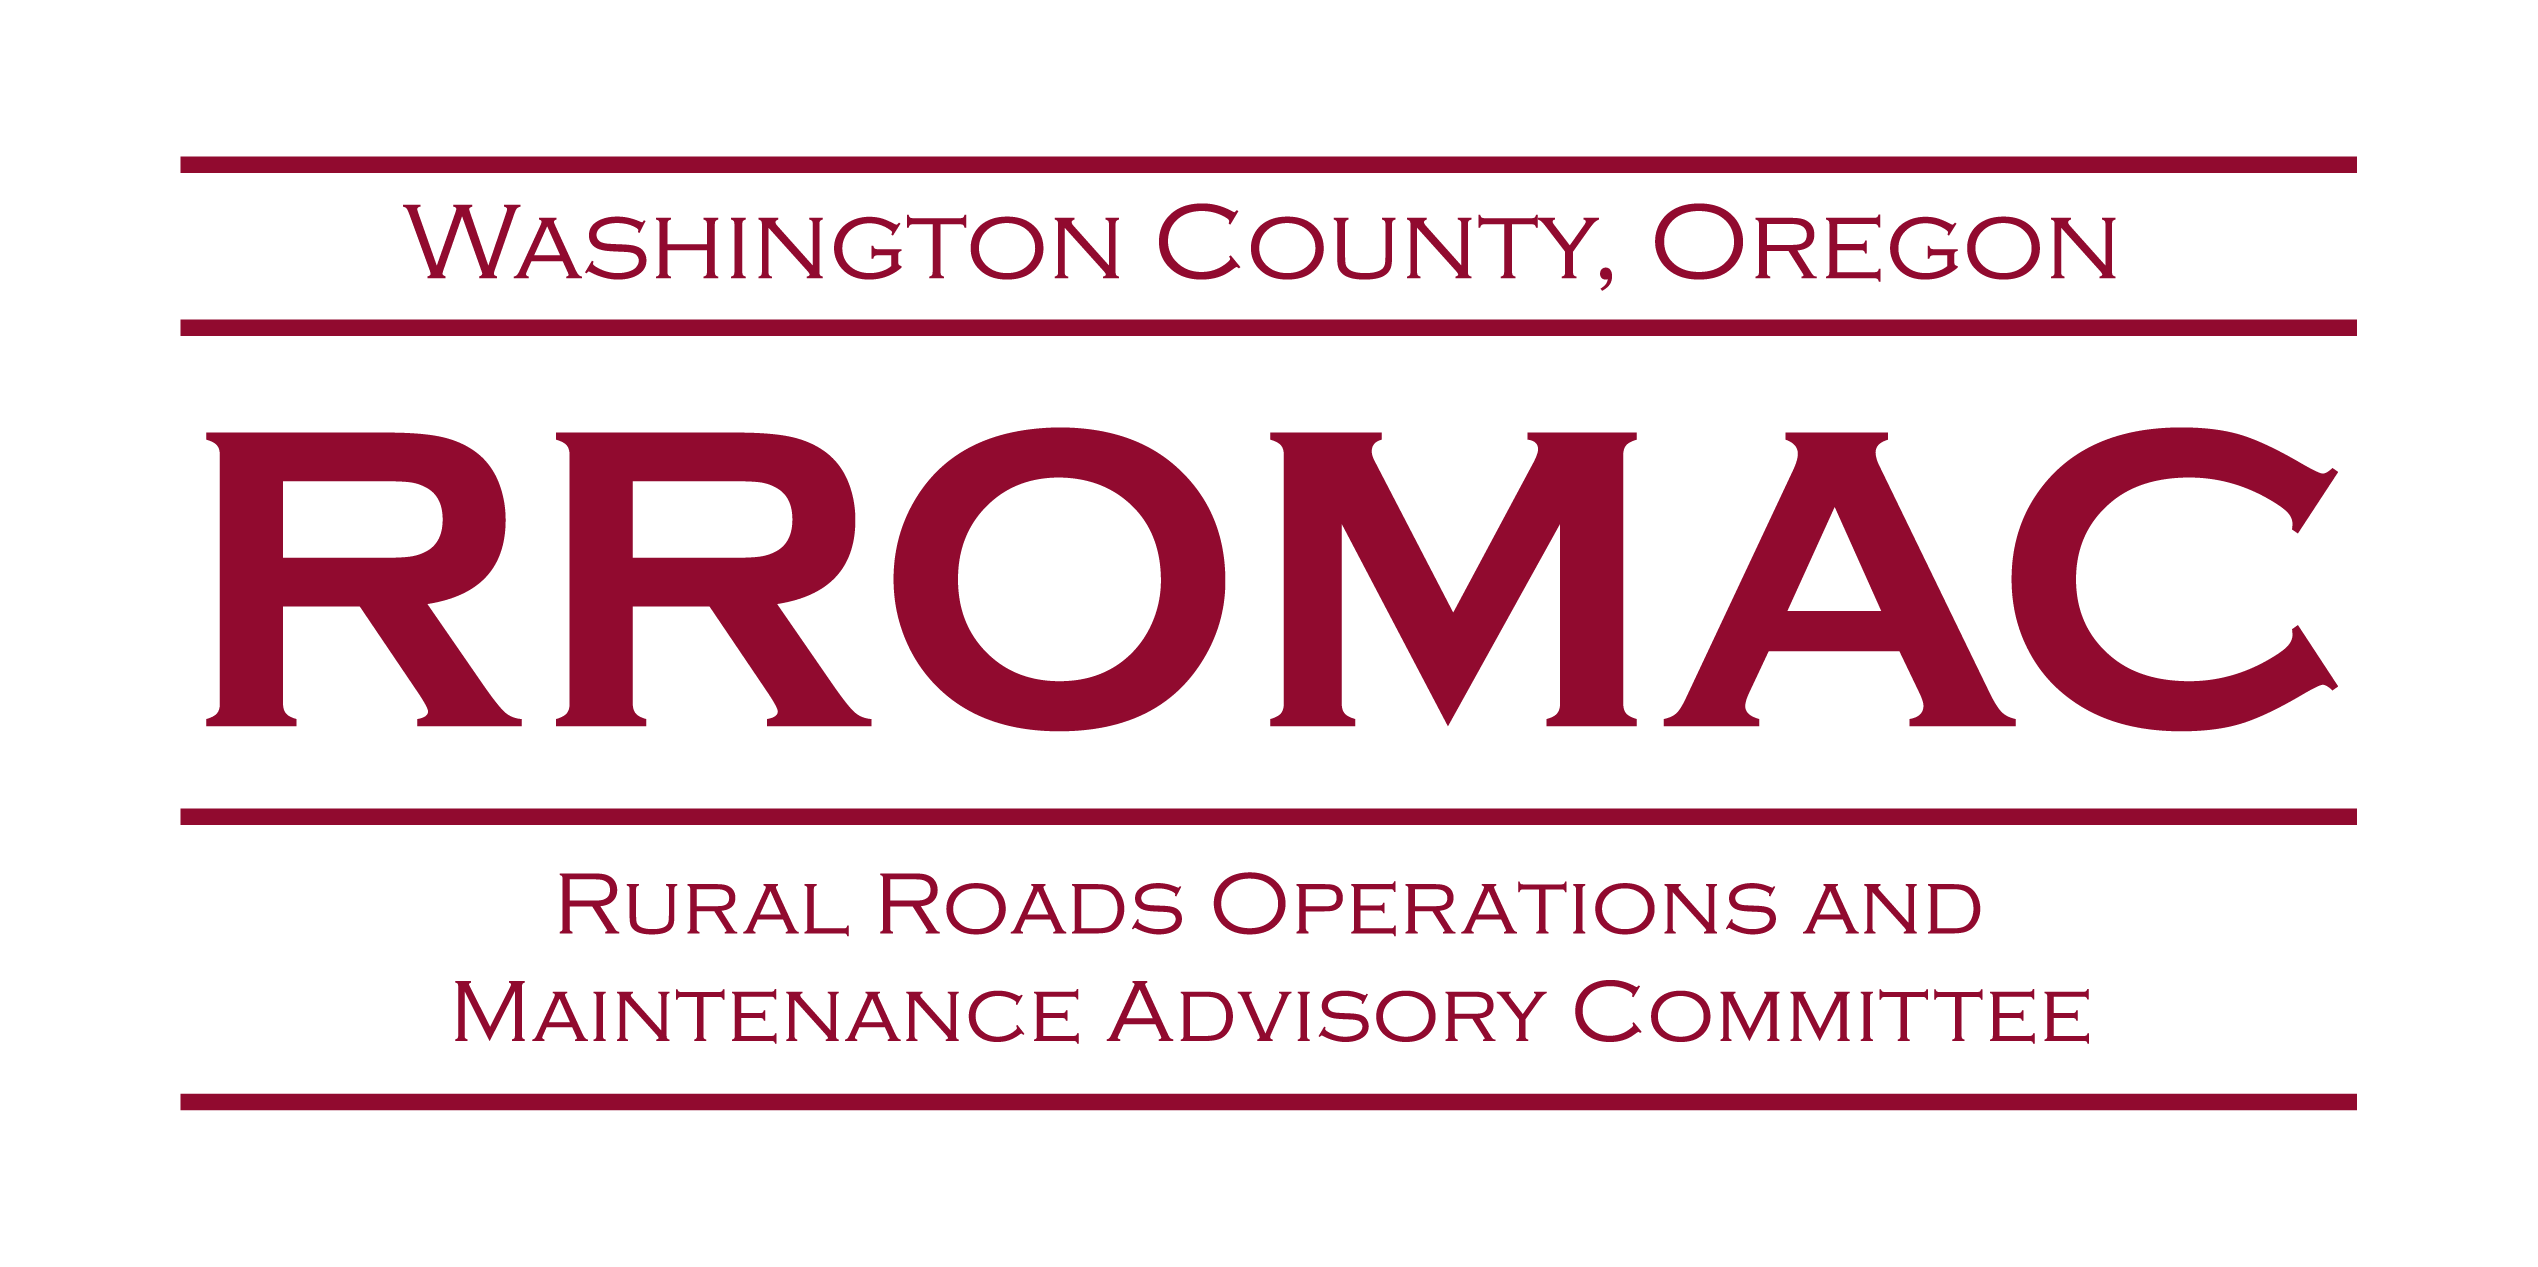 Rural Roads Operations and Maintenance Advisory Committee